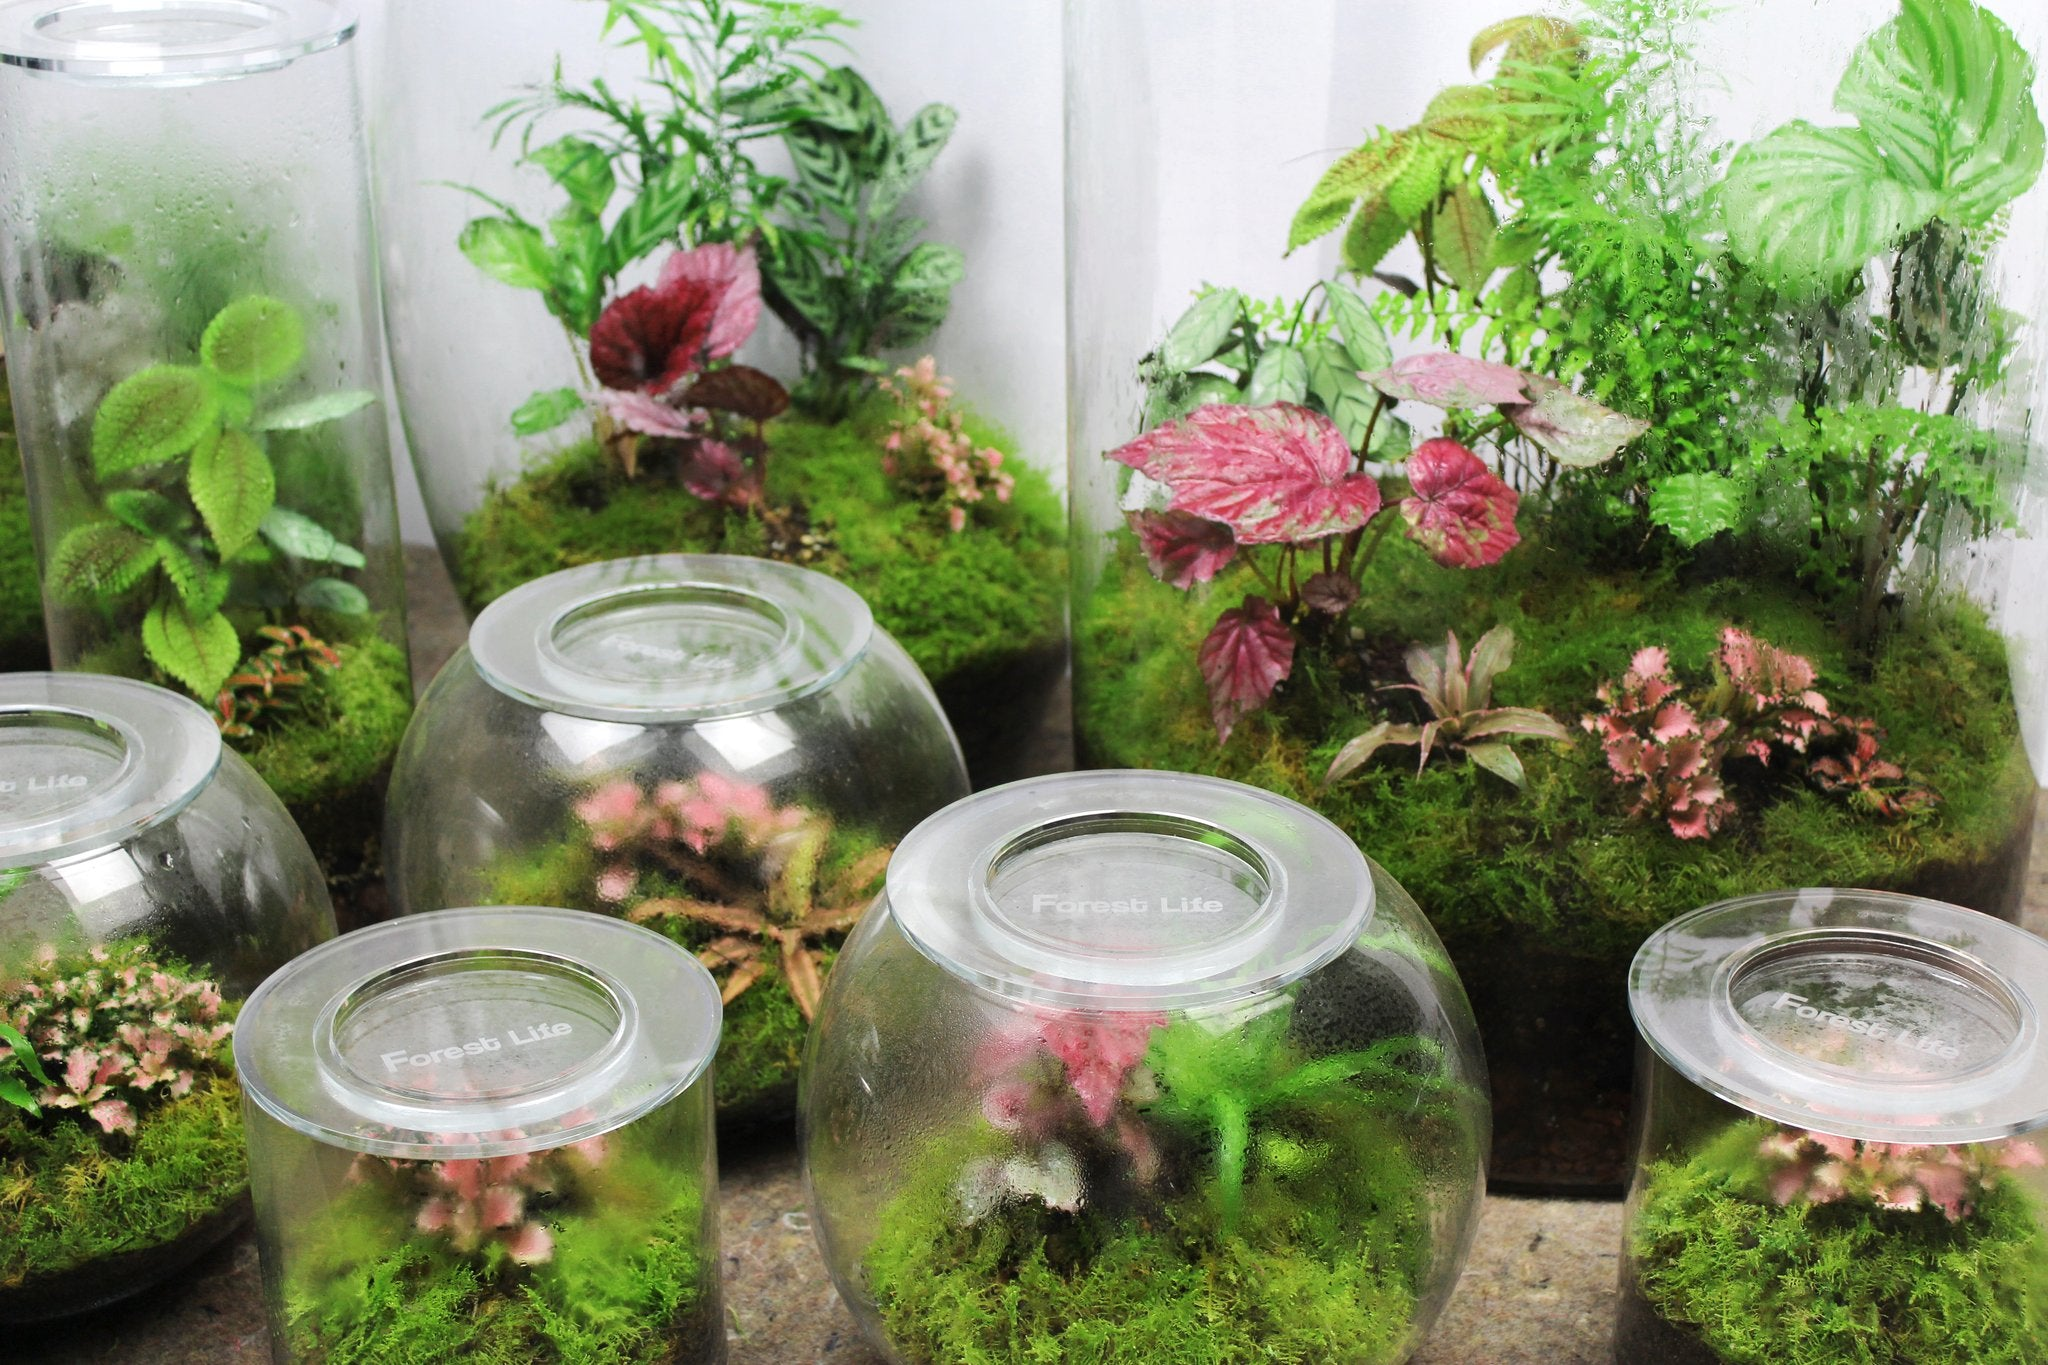 What is a terrarium? What is an ecosystem?